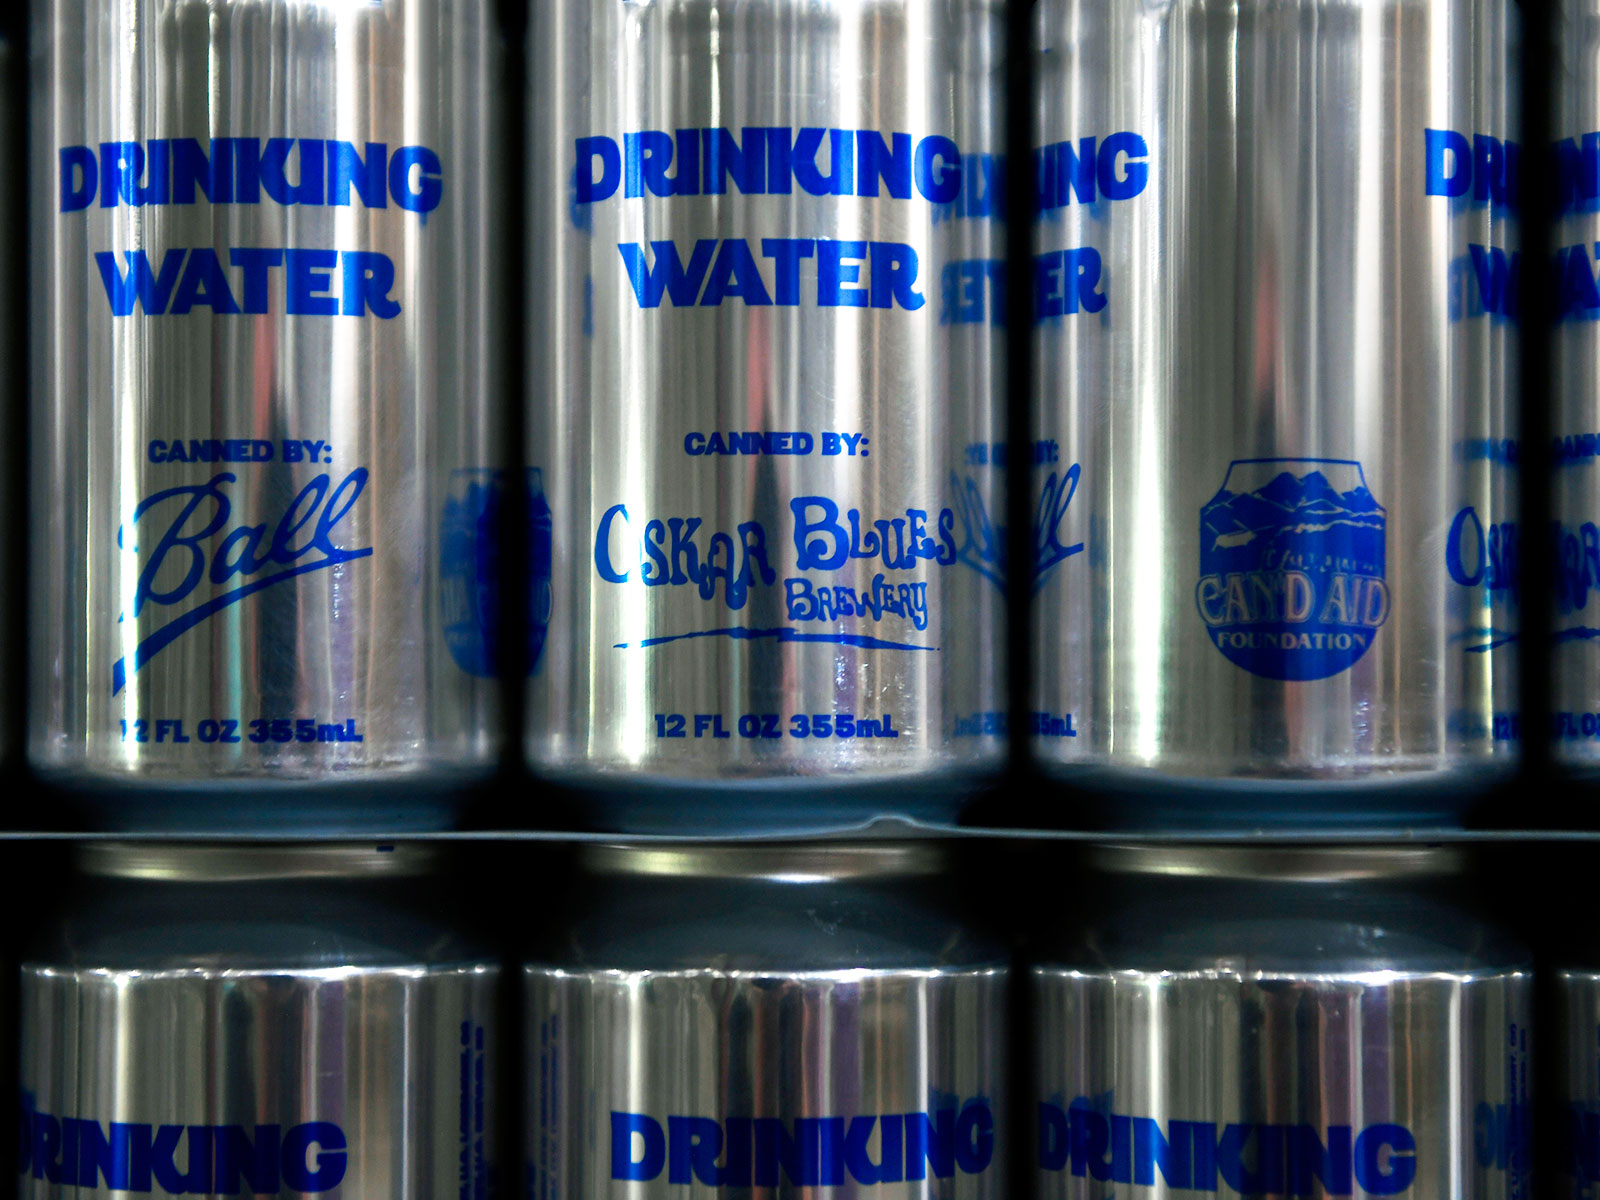 oscar blues makes canned water for hurricane irma